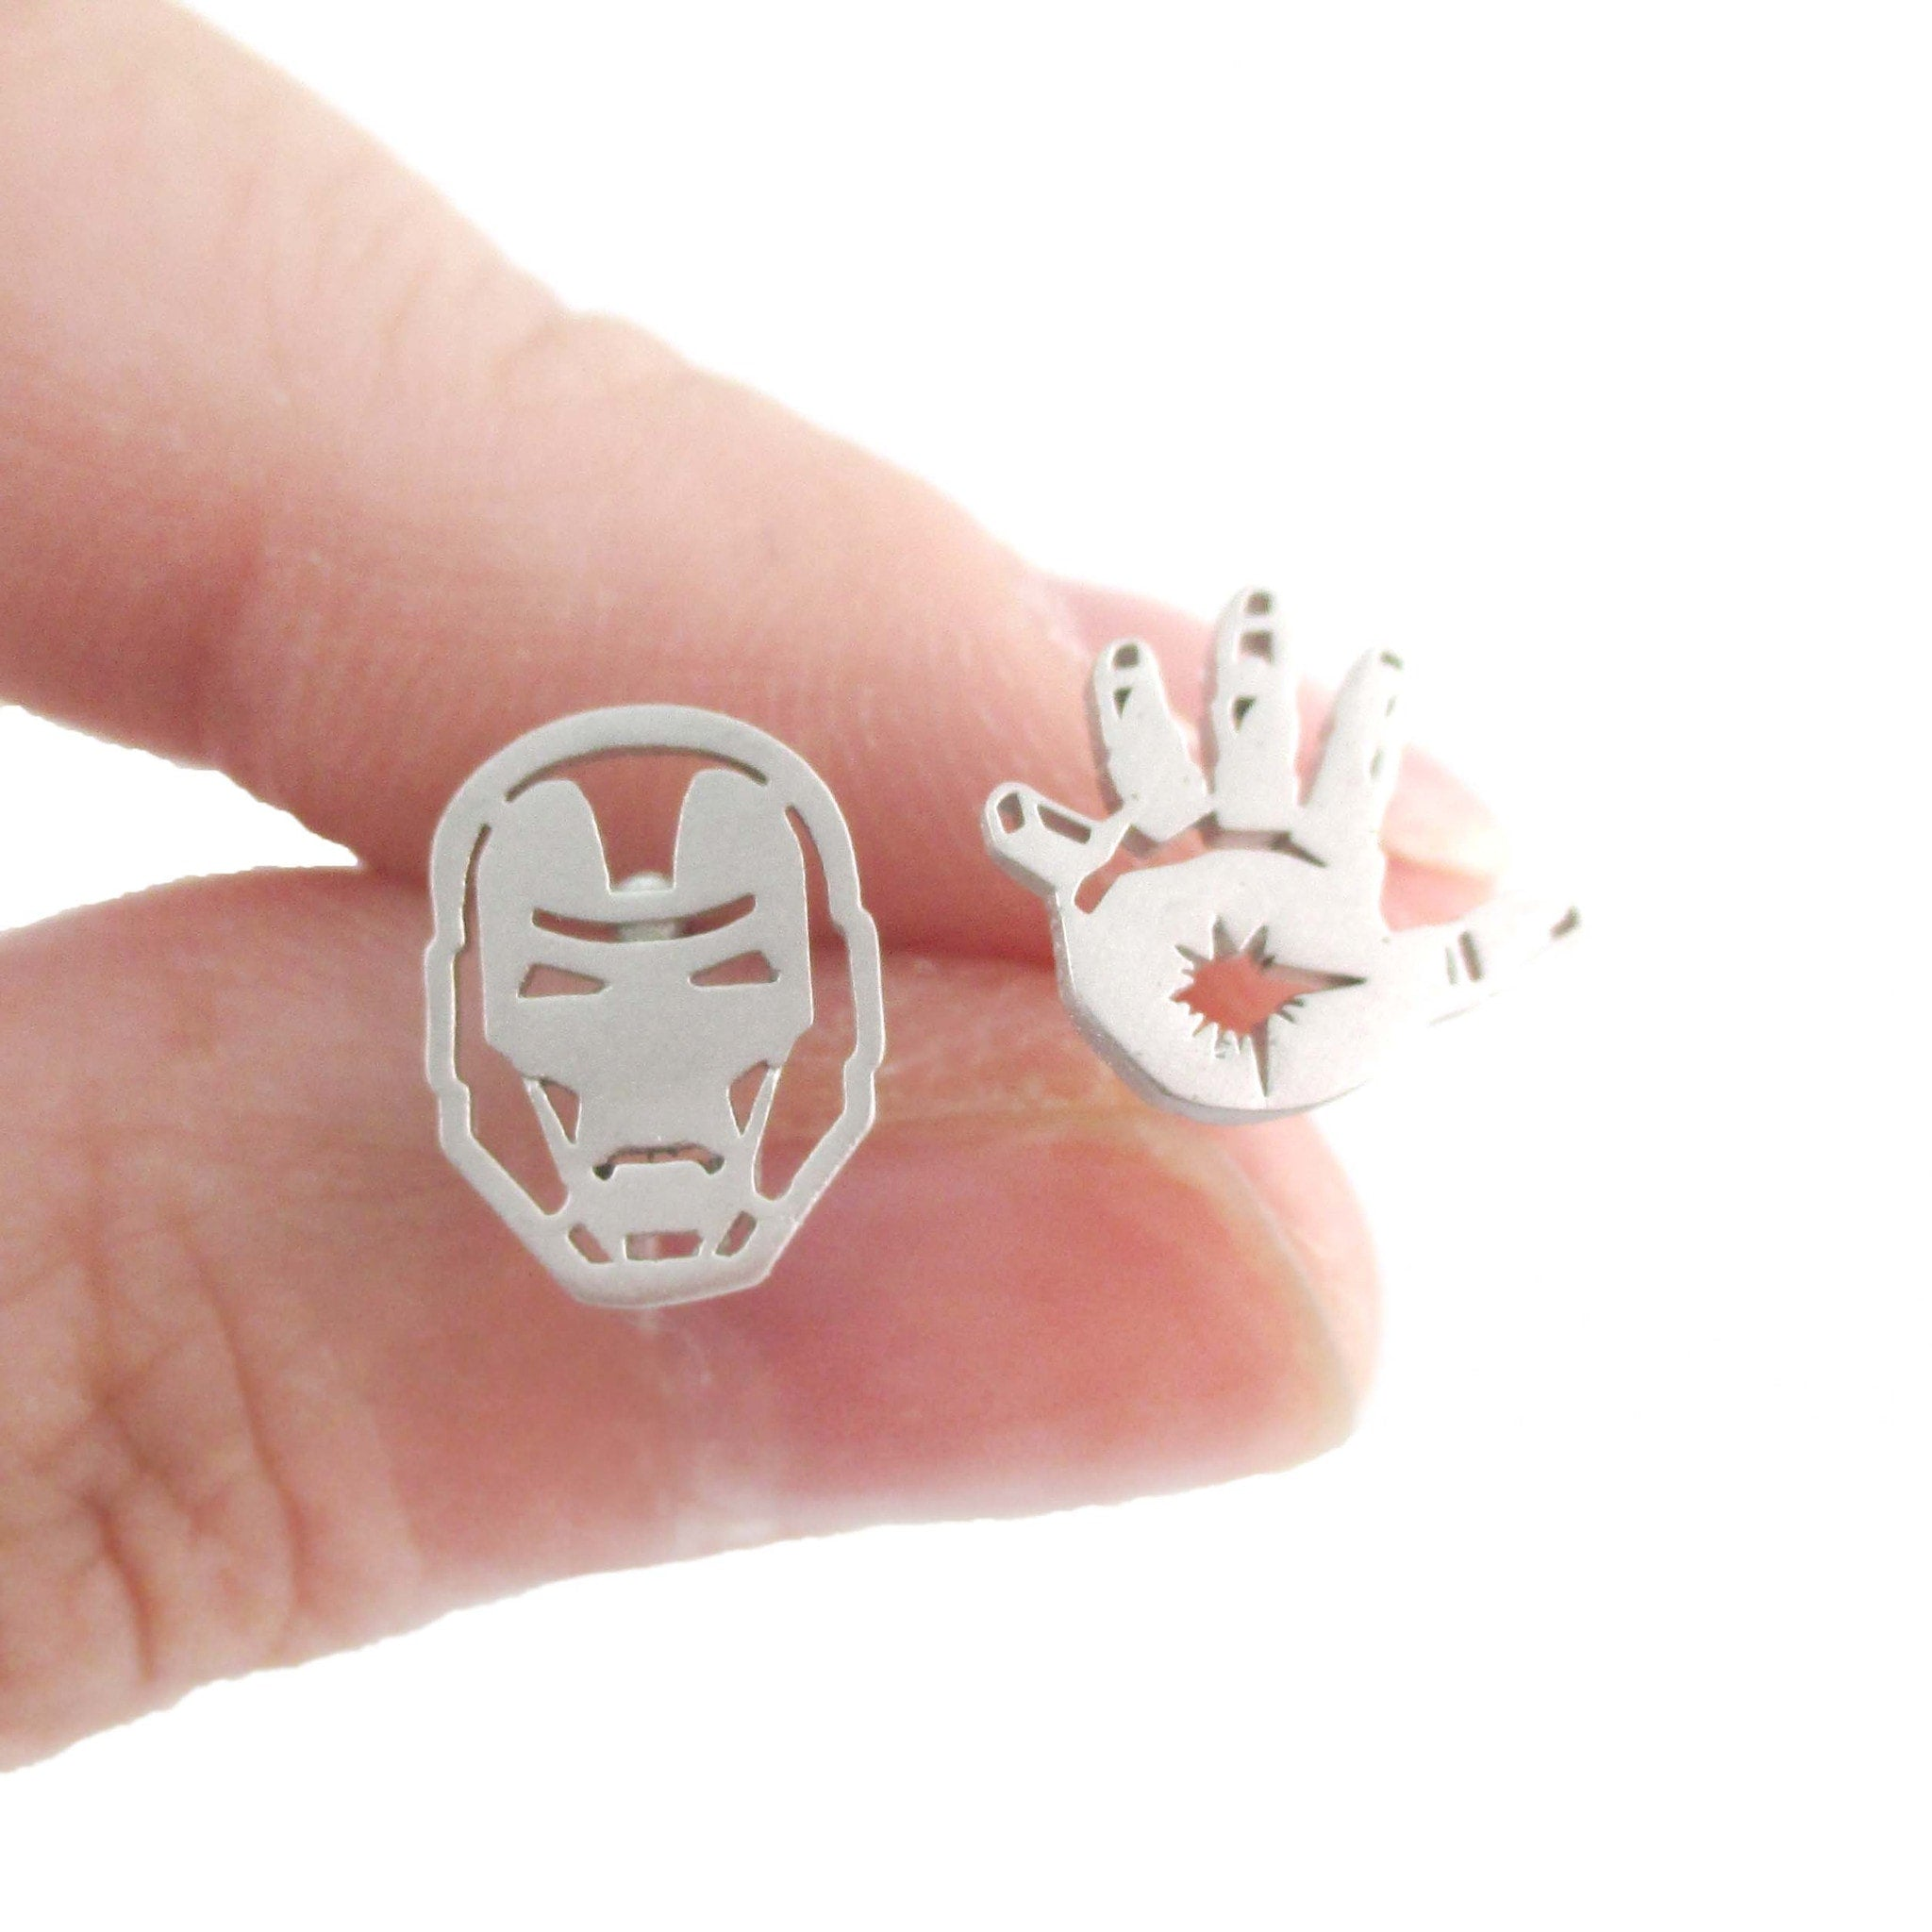 Iron Man Mask and Glove Shaped Stud Earrings in Silver